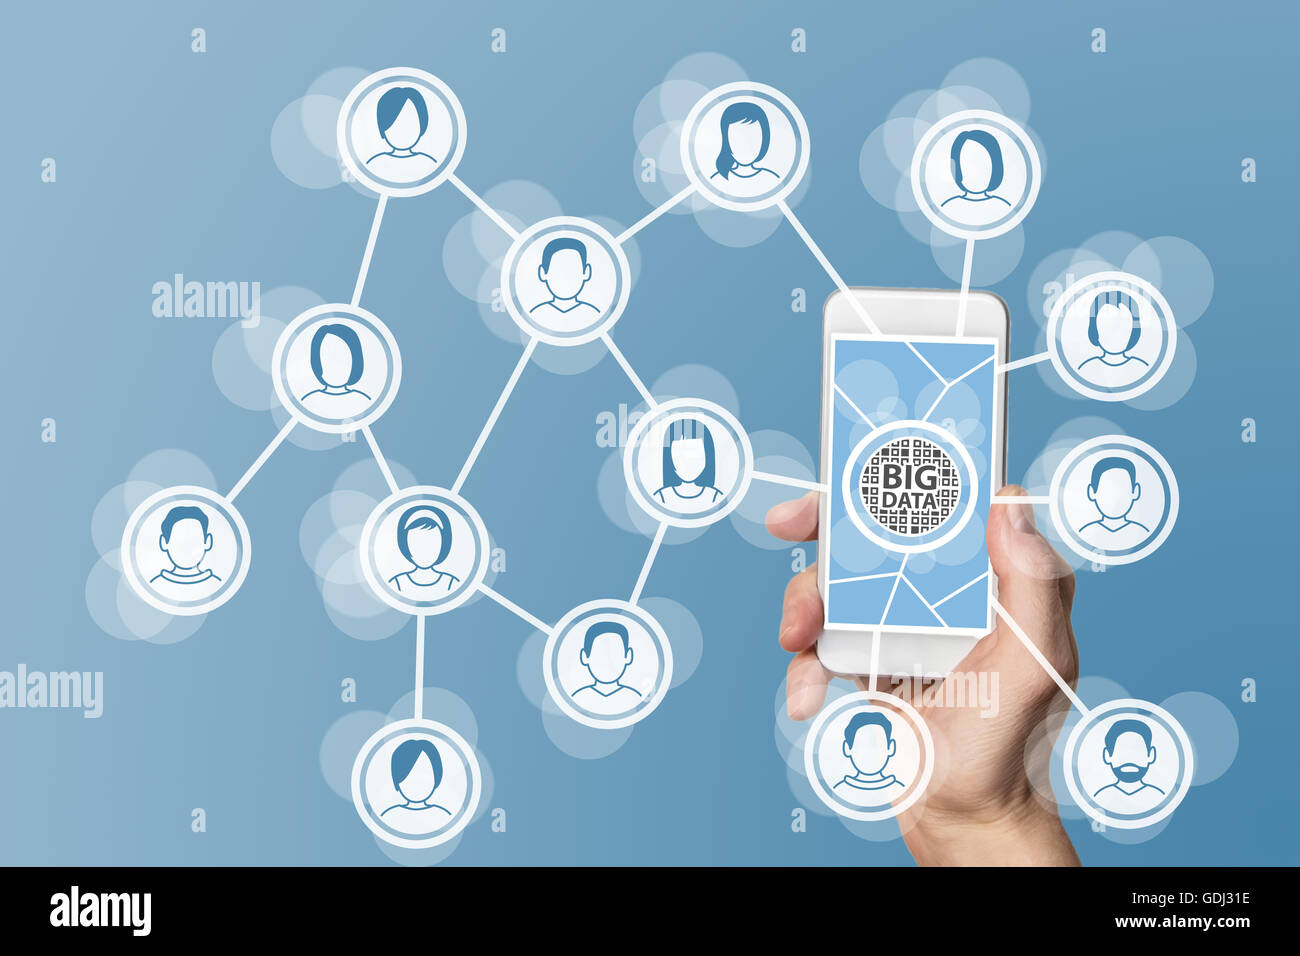 Big data concept to analyze social networks - Stock Image